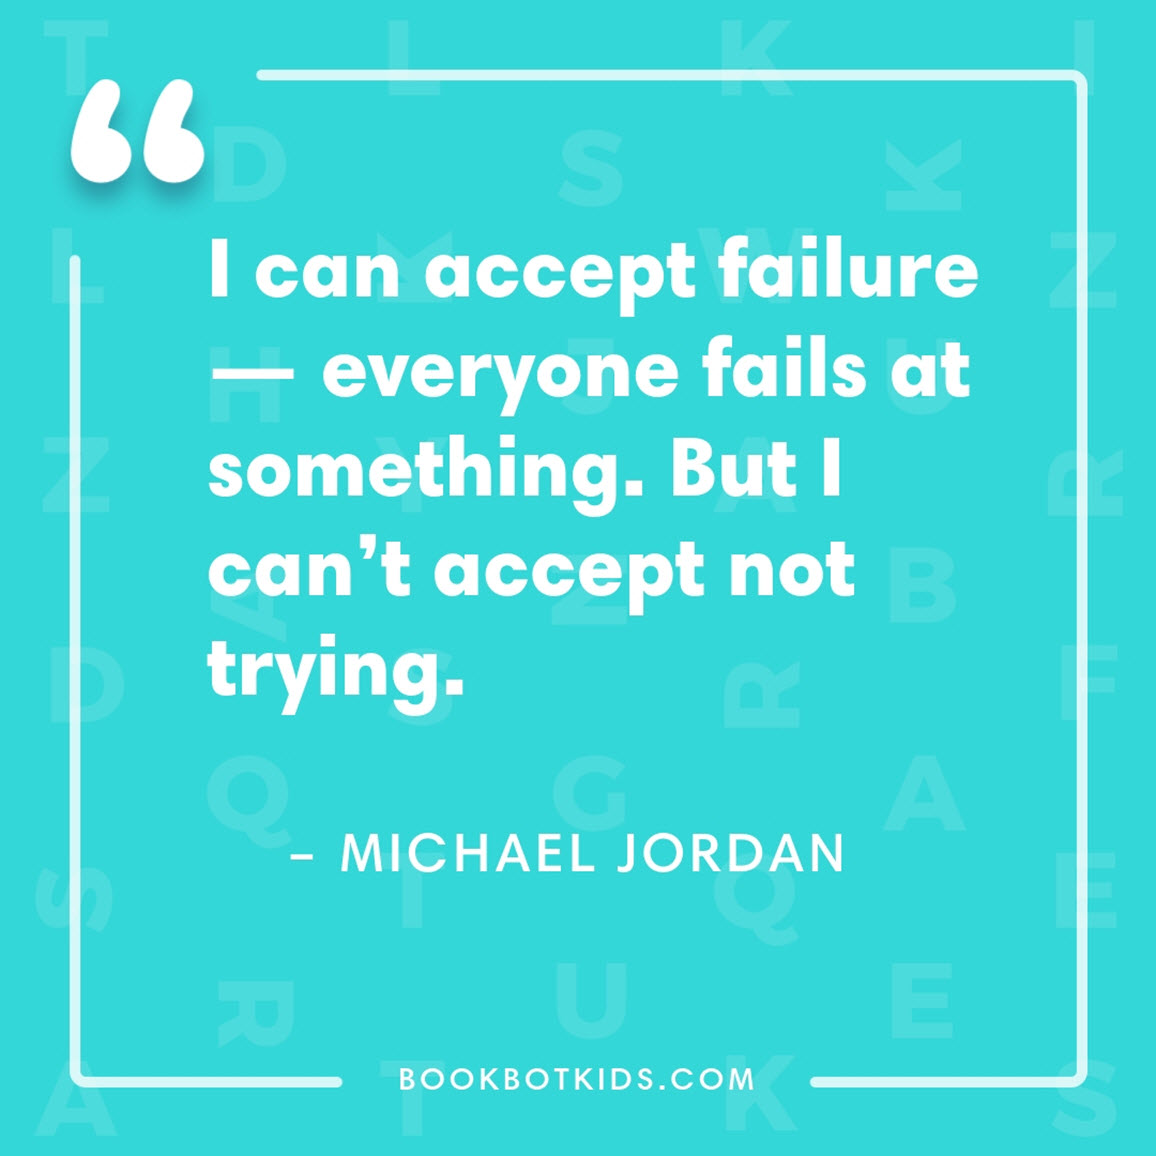 I can accept failure — everyone fails at something. But I can't accept not trying. – Michael Jordan